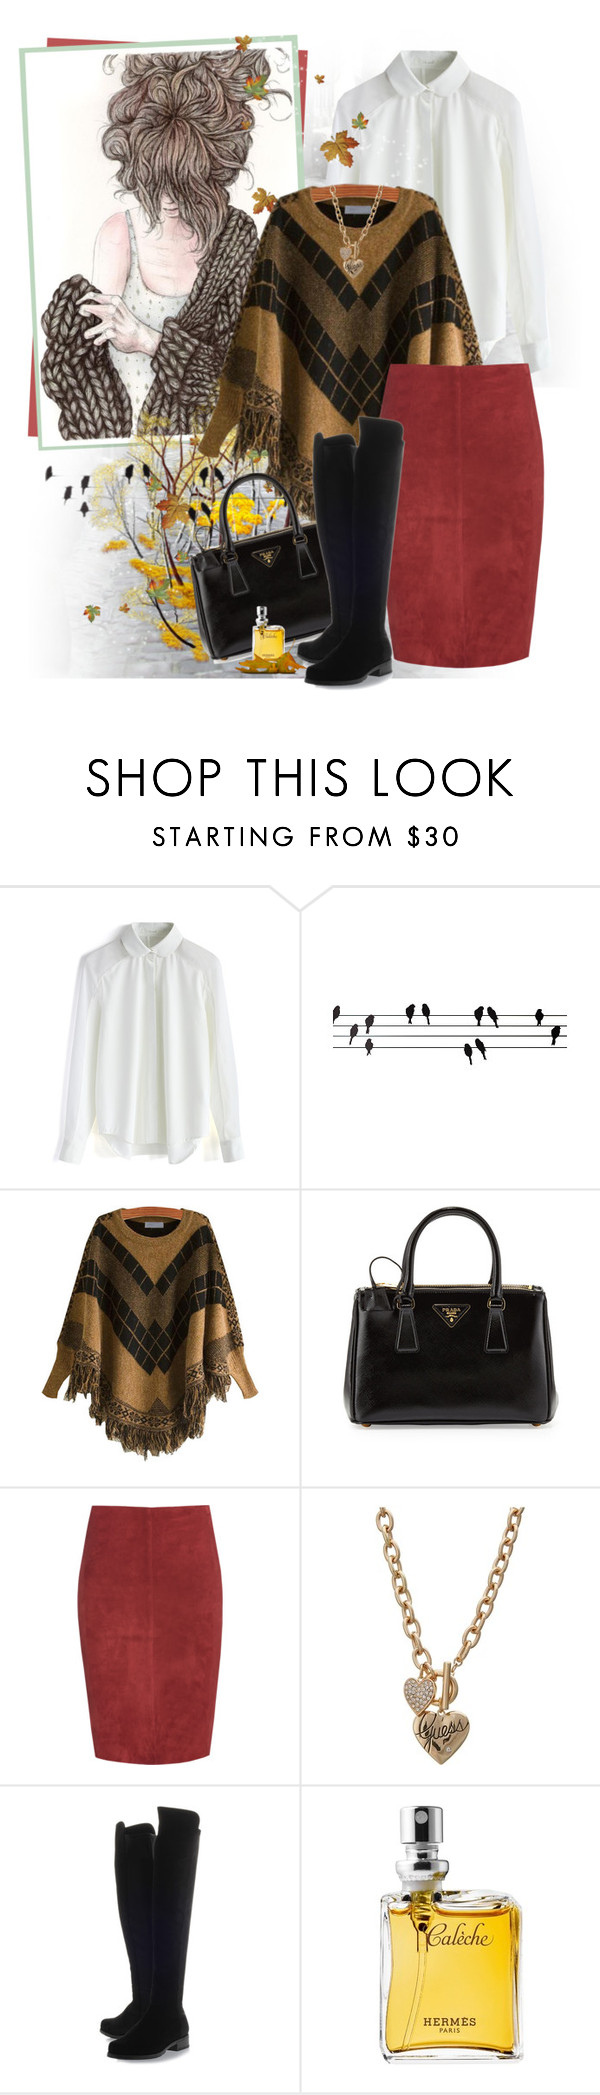 """""""Suede***"""" by ksenia-lo ❤ liked on Polyvore featuring Chicwish, ferm LIVING, Prada, Jitrois, GUESS, Stuart Weitzman and Hermès"""